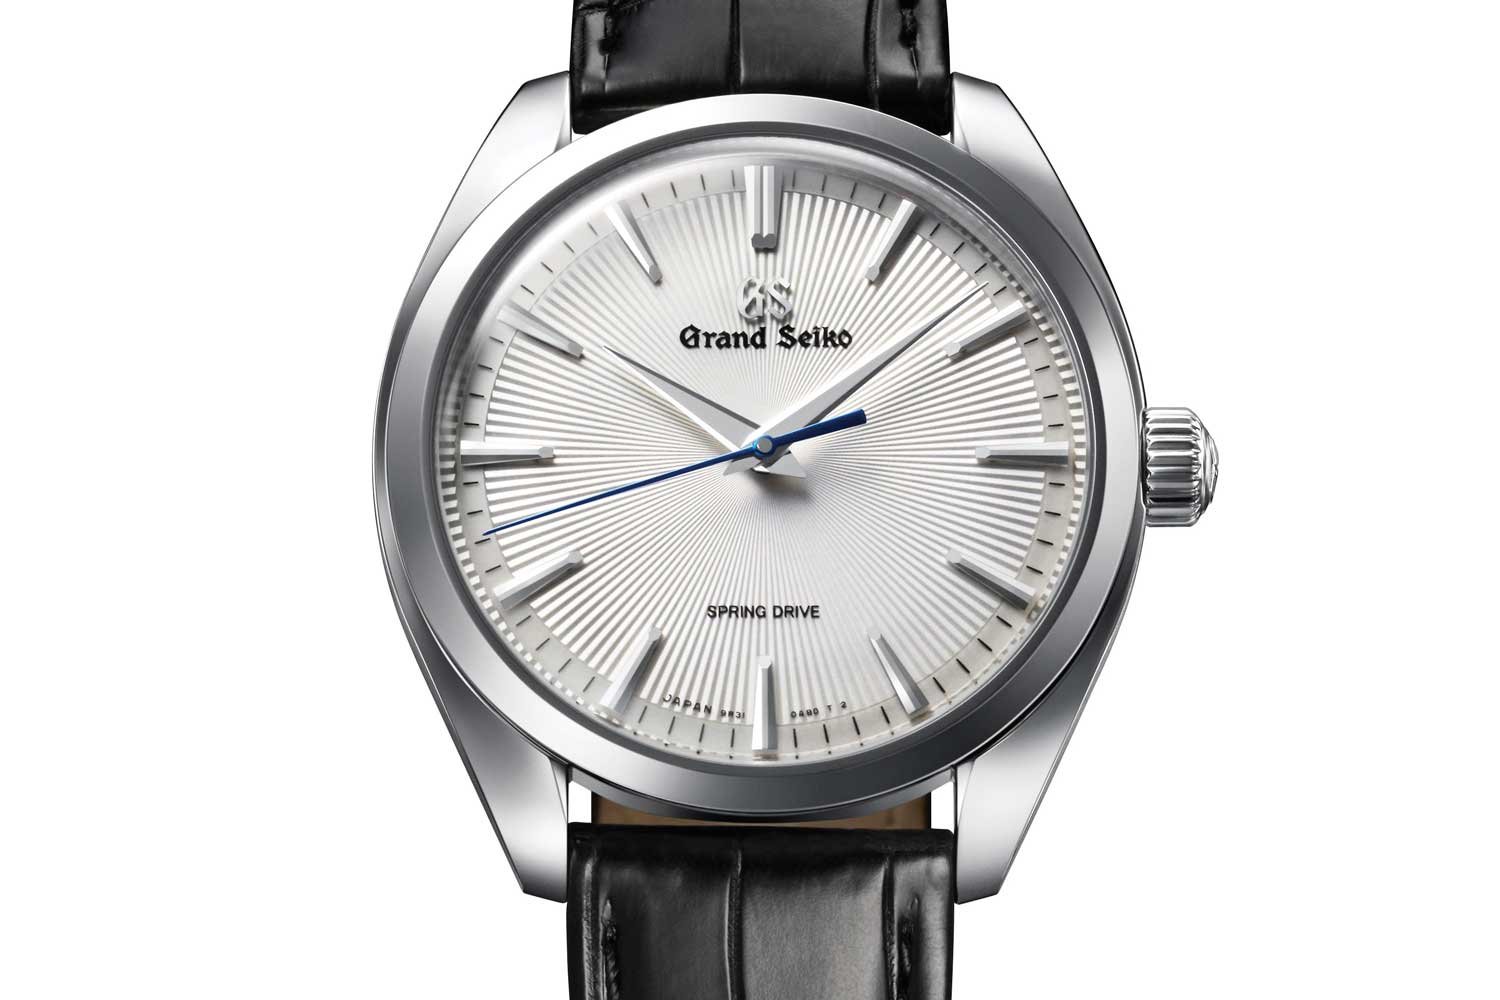 Grand Seiko Elegance SBGY003 with guilloché style patterned dial